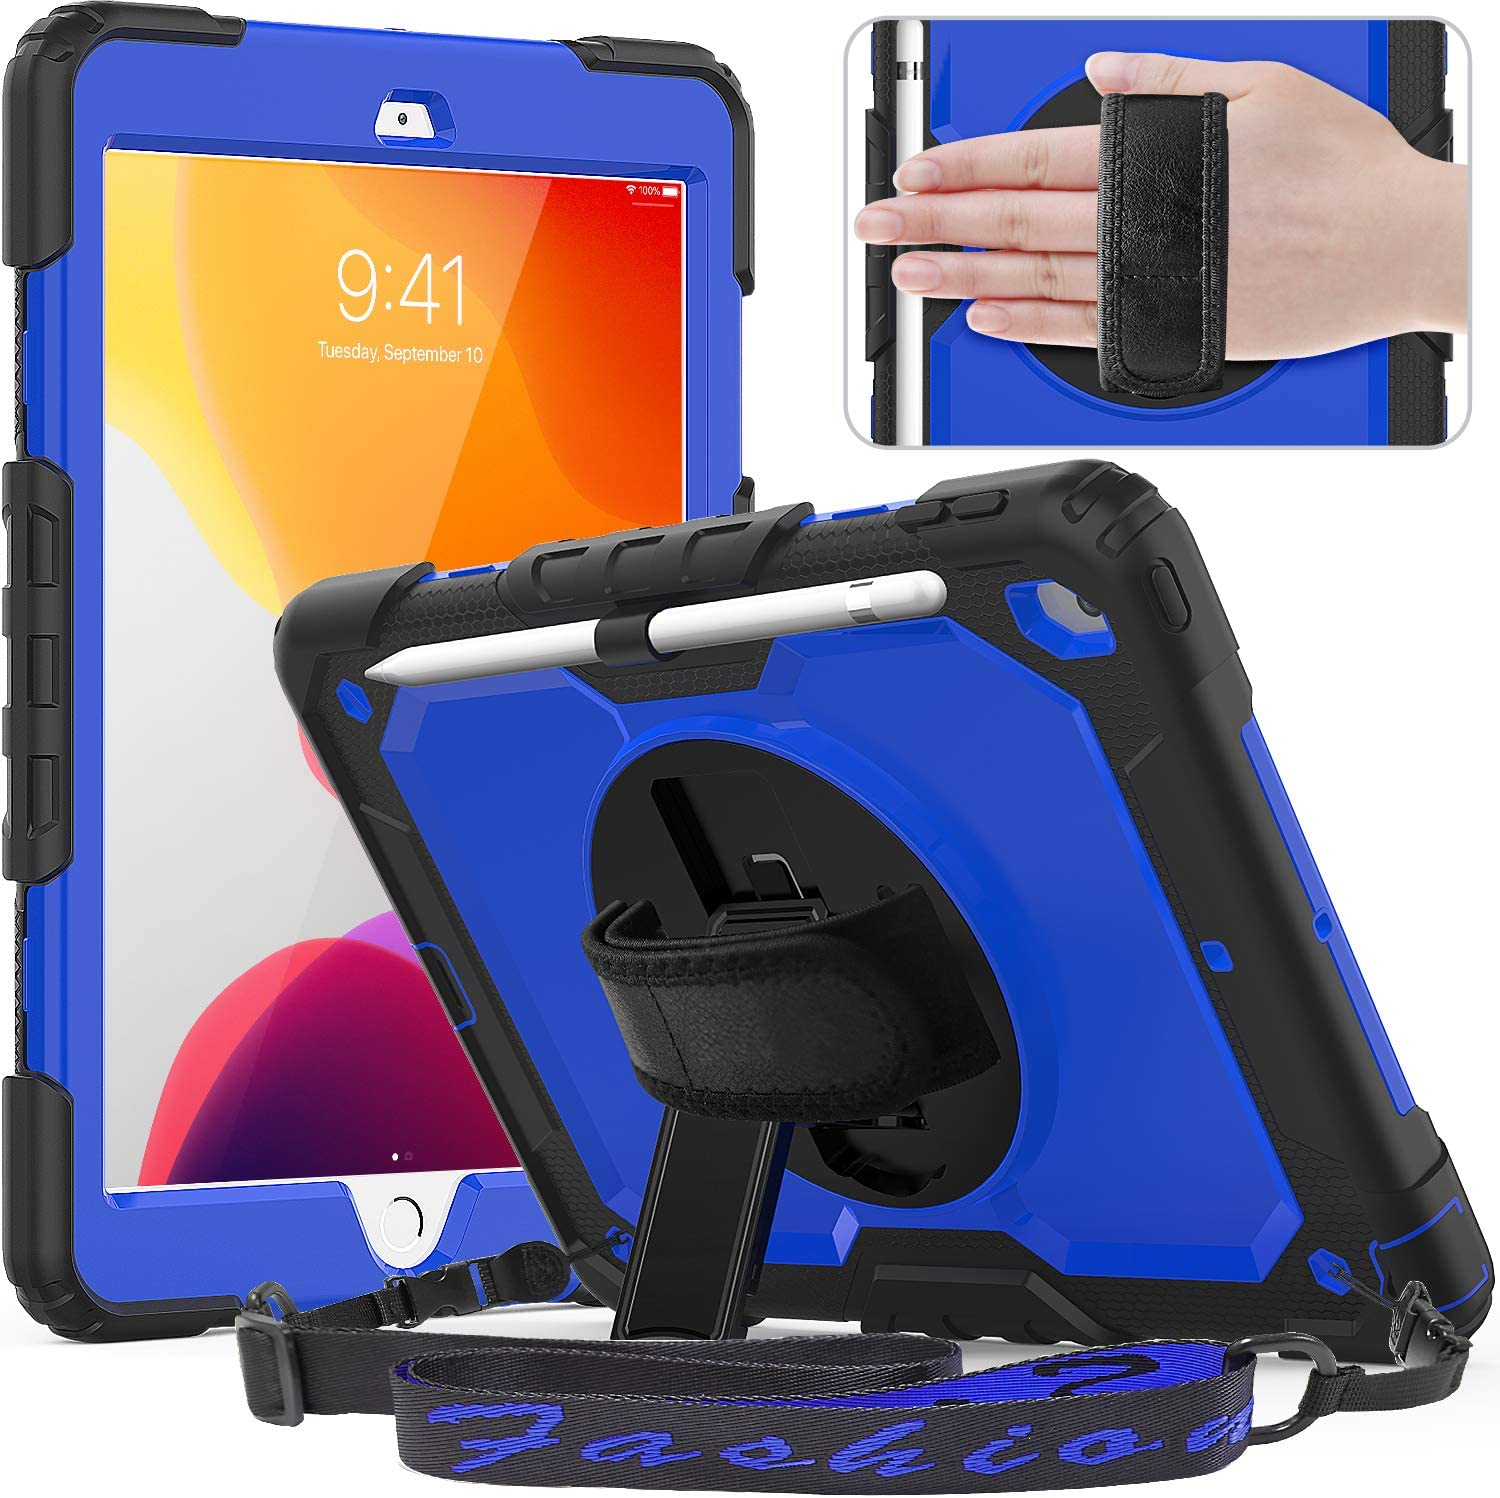 Timecity iPad 10.2 Case 2020/ 2019, iPad 8th/ 7th Generation Case with Pencil Holder, 360° Rotatable Stand with Hand Strap Shoulder Strap, Built-in Screen Protector iPad 8/7 Generation Case,Dark Blue